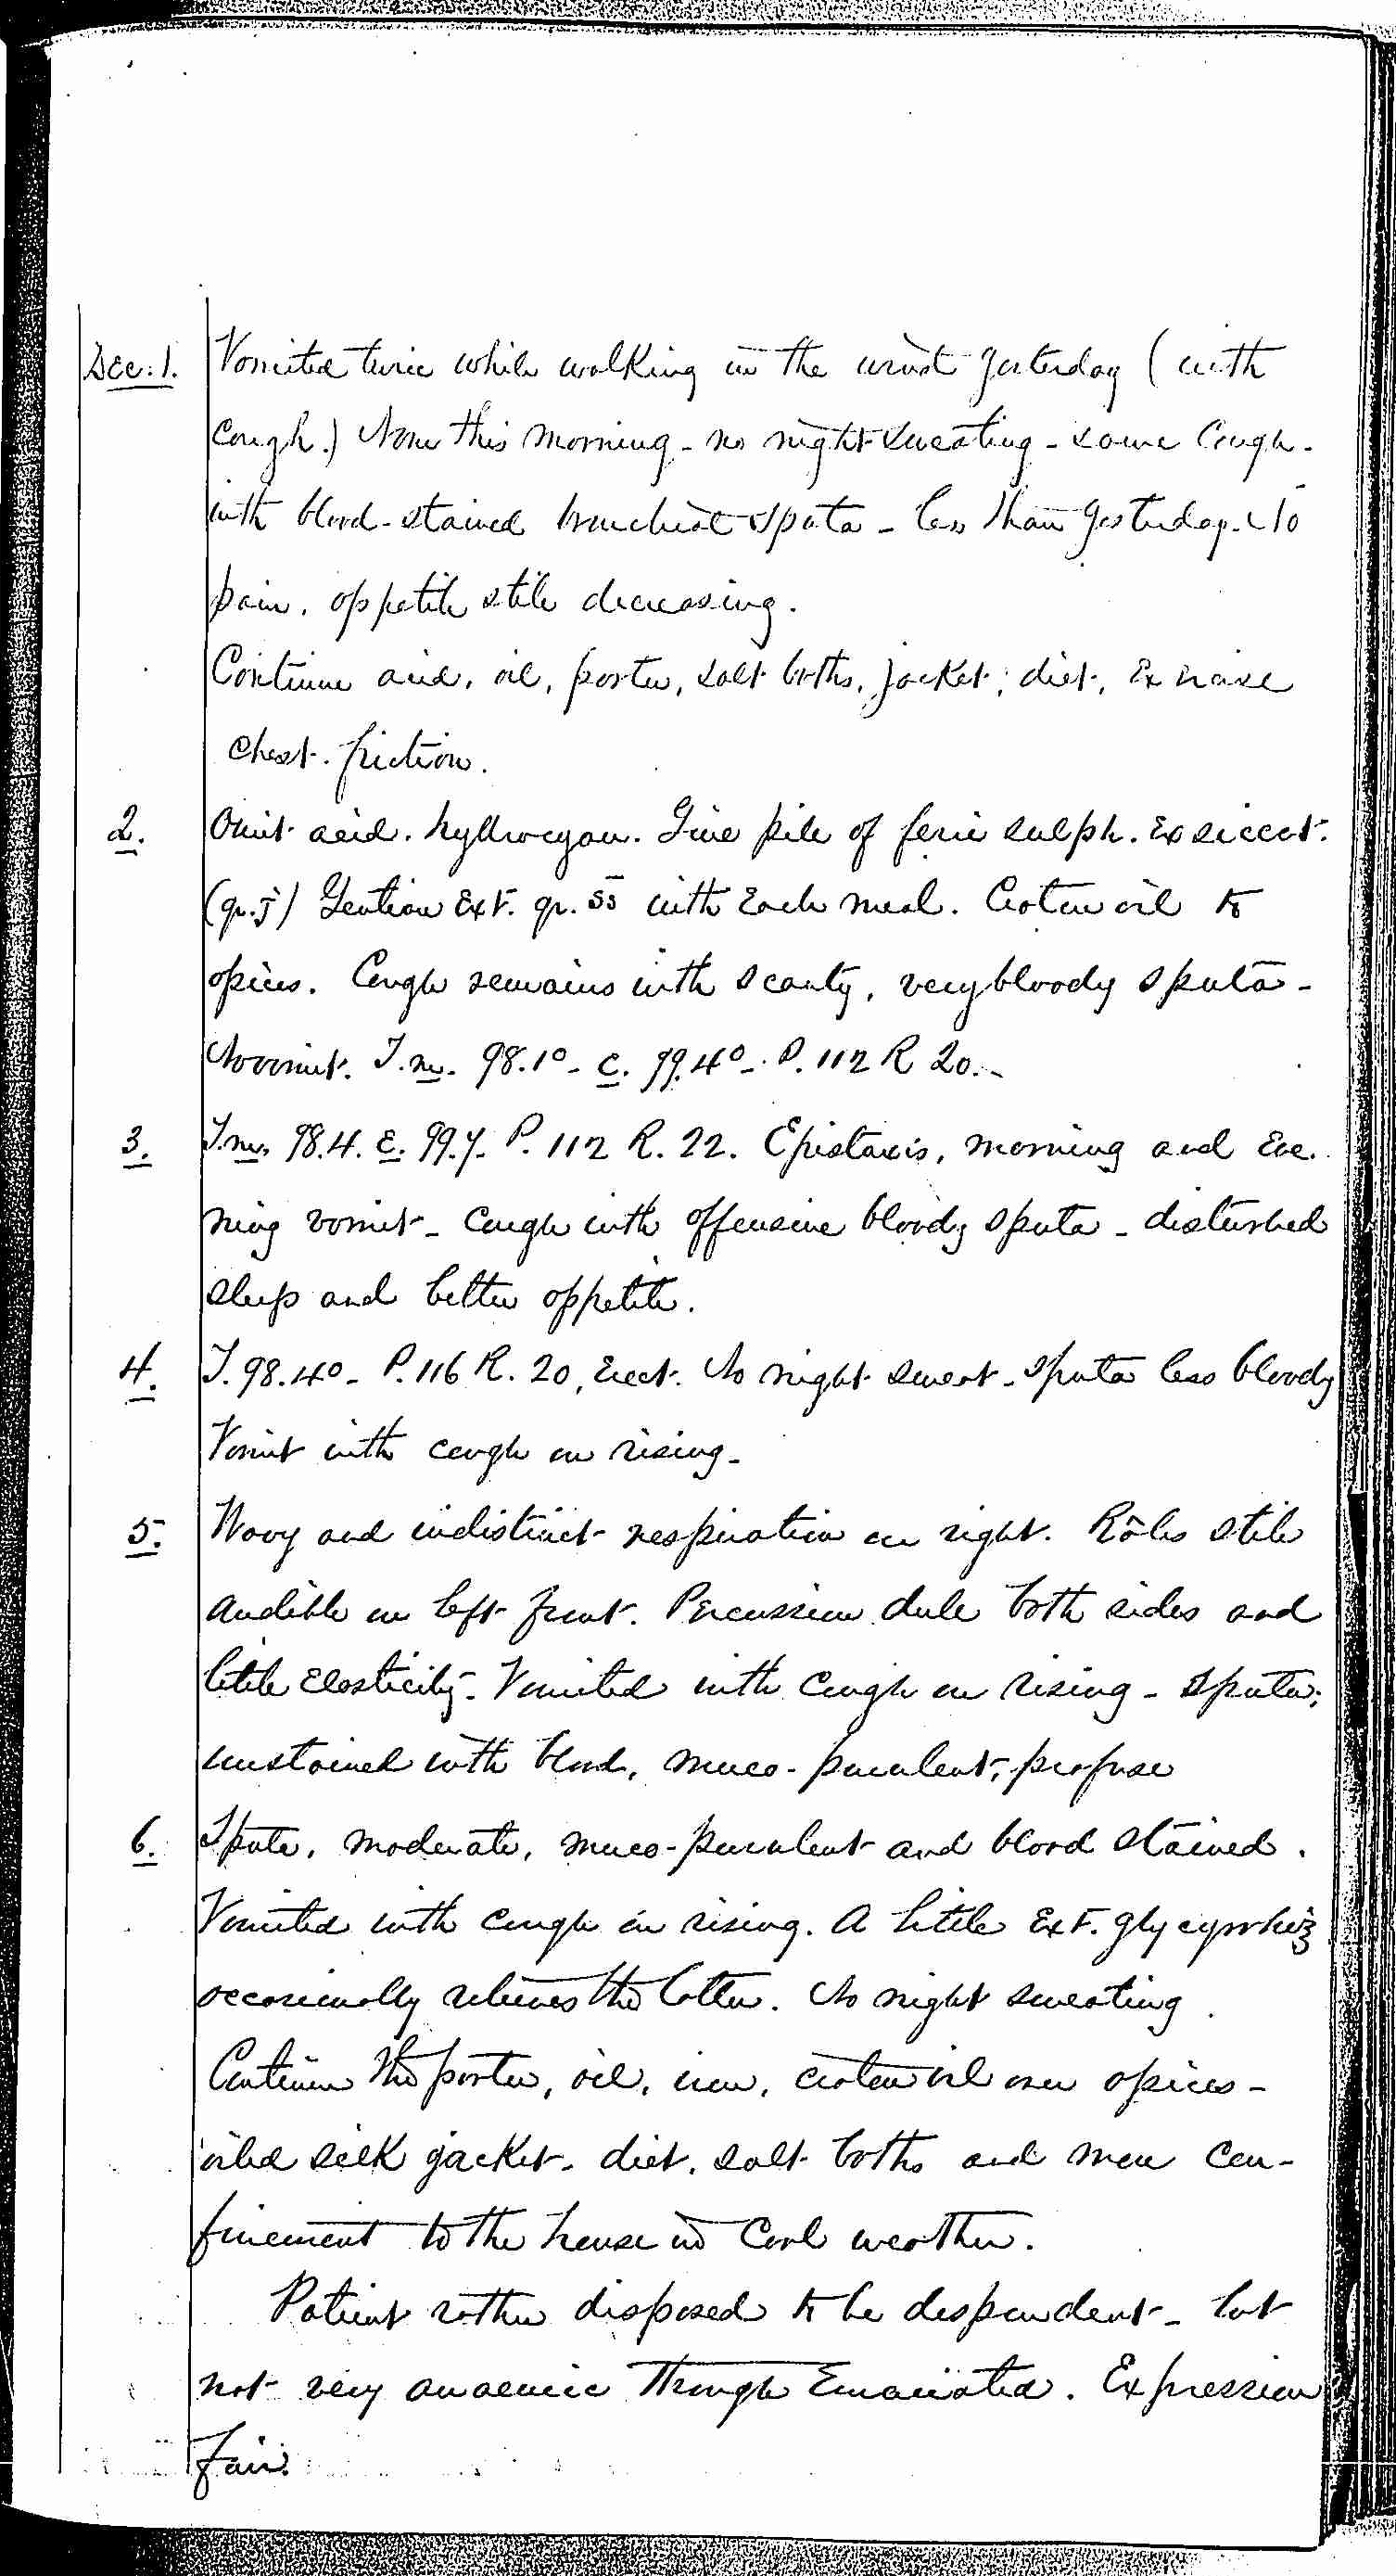 Entry for Hugh Riley (page 17 of 31) in the log Hospital Tickets and Case Papers - Naval Hospital - Washington, D.C. - 1868-69